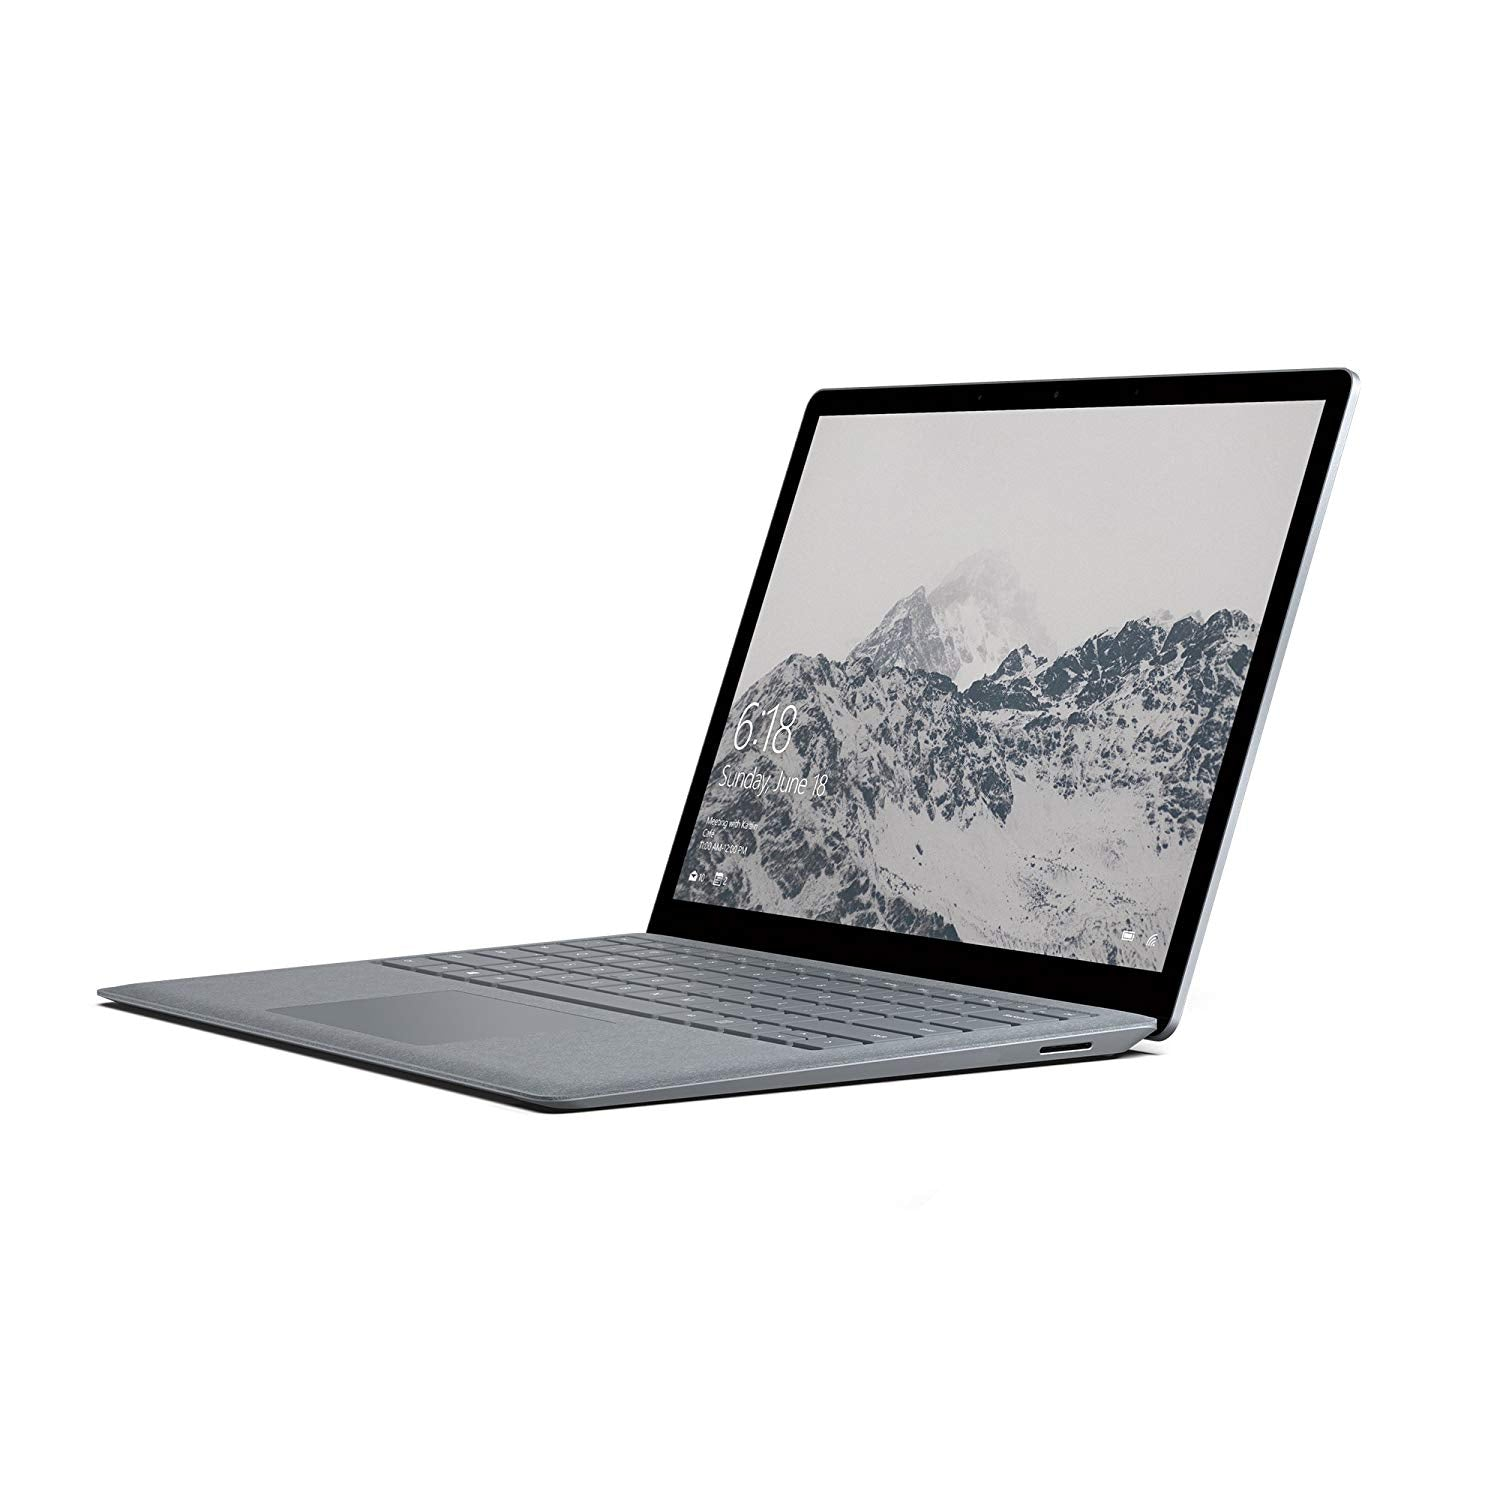 "Microsoft Surface Book 2 13.5"", i5, 256GB/8GB"